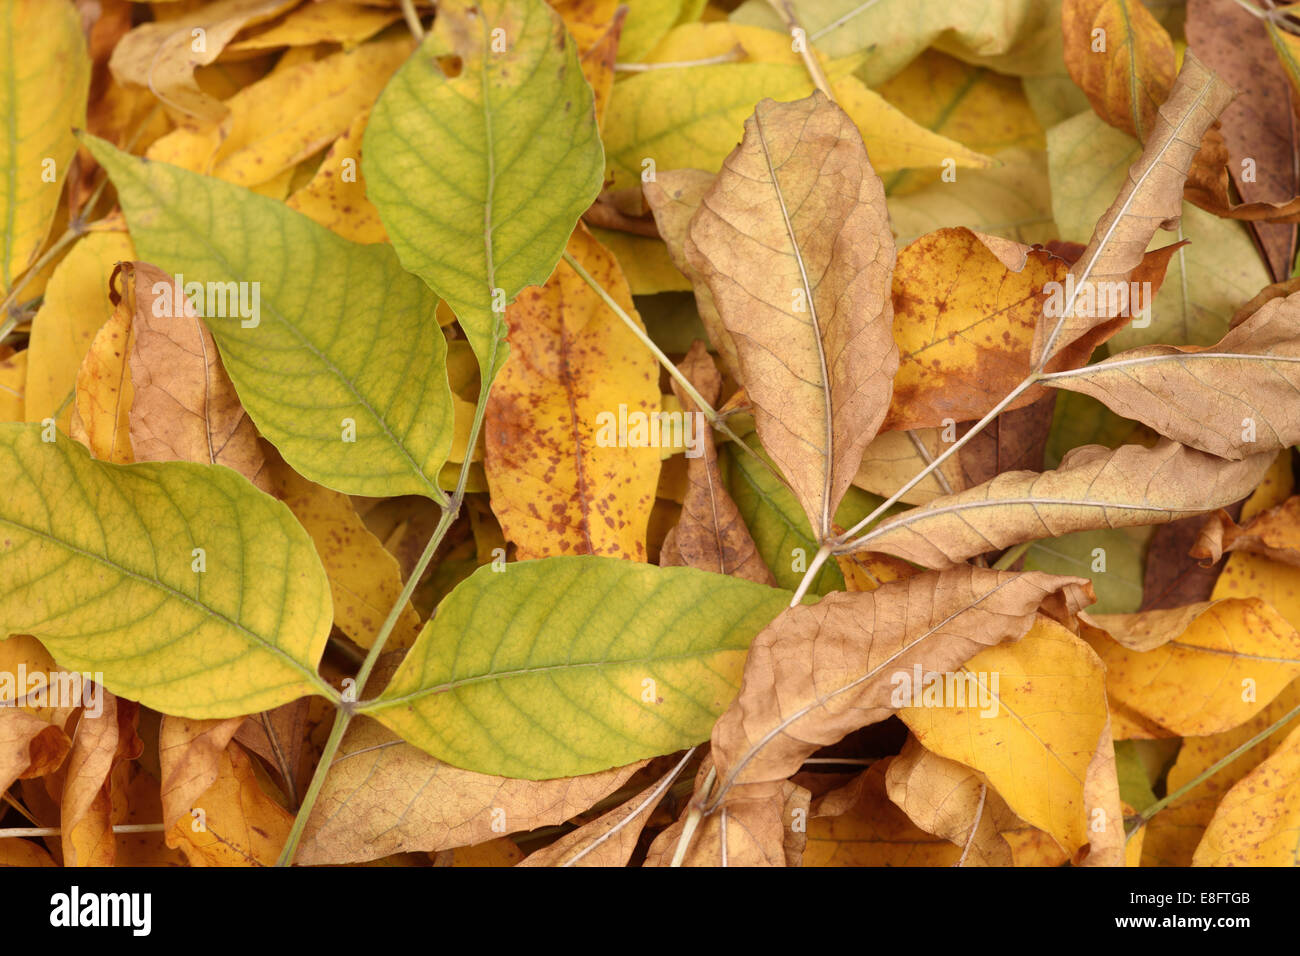 Heap of dried leaves. - Stock Image